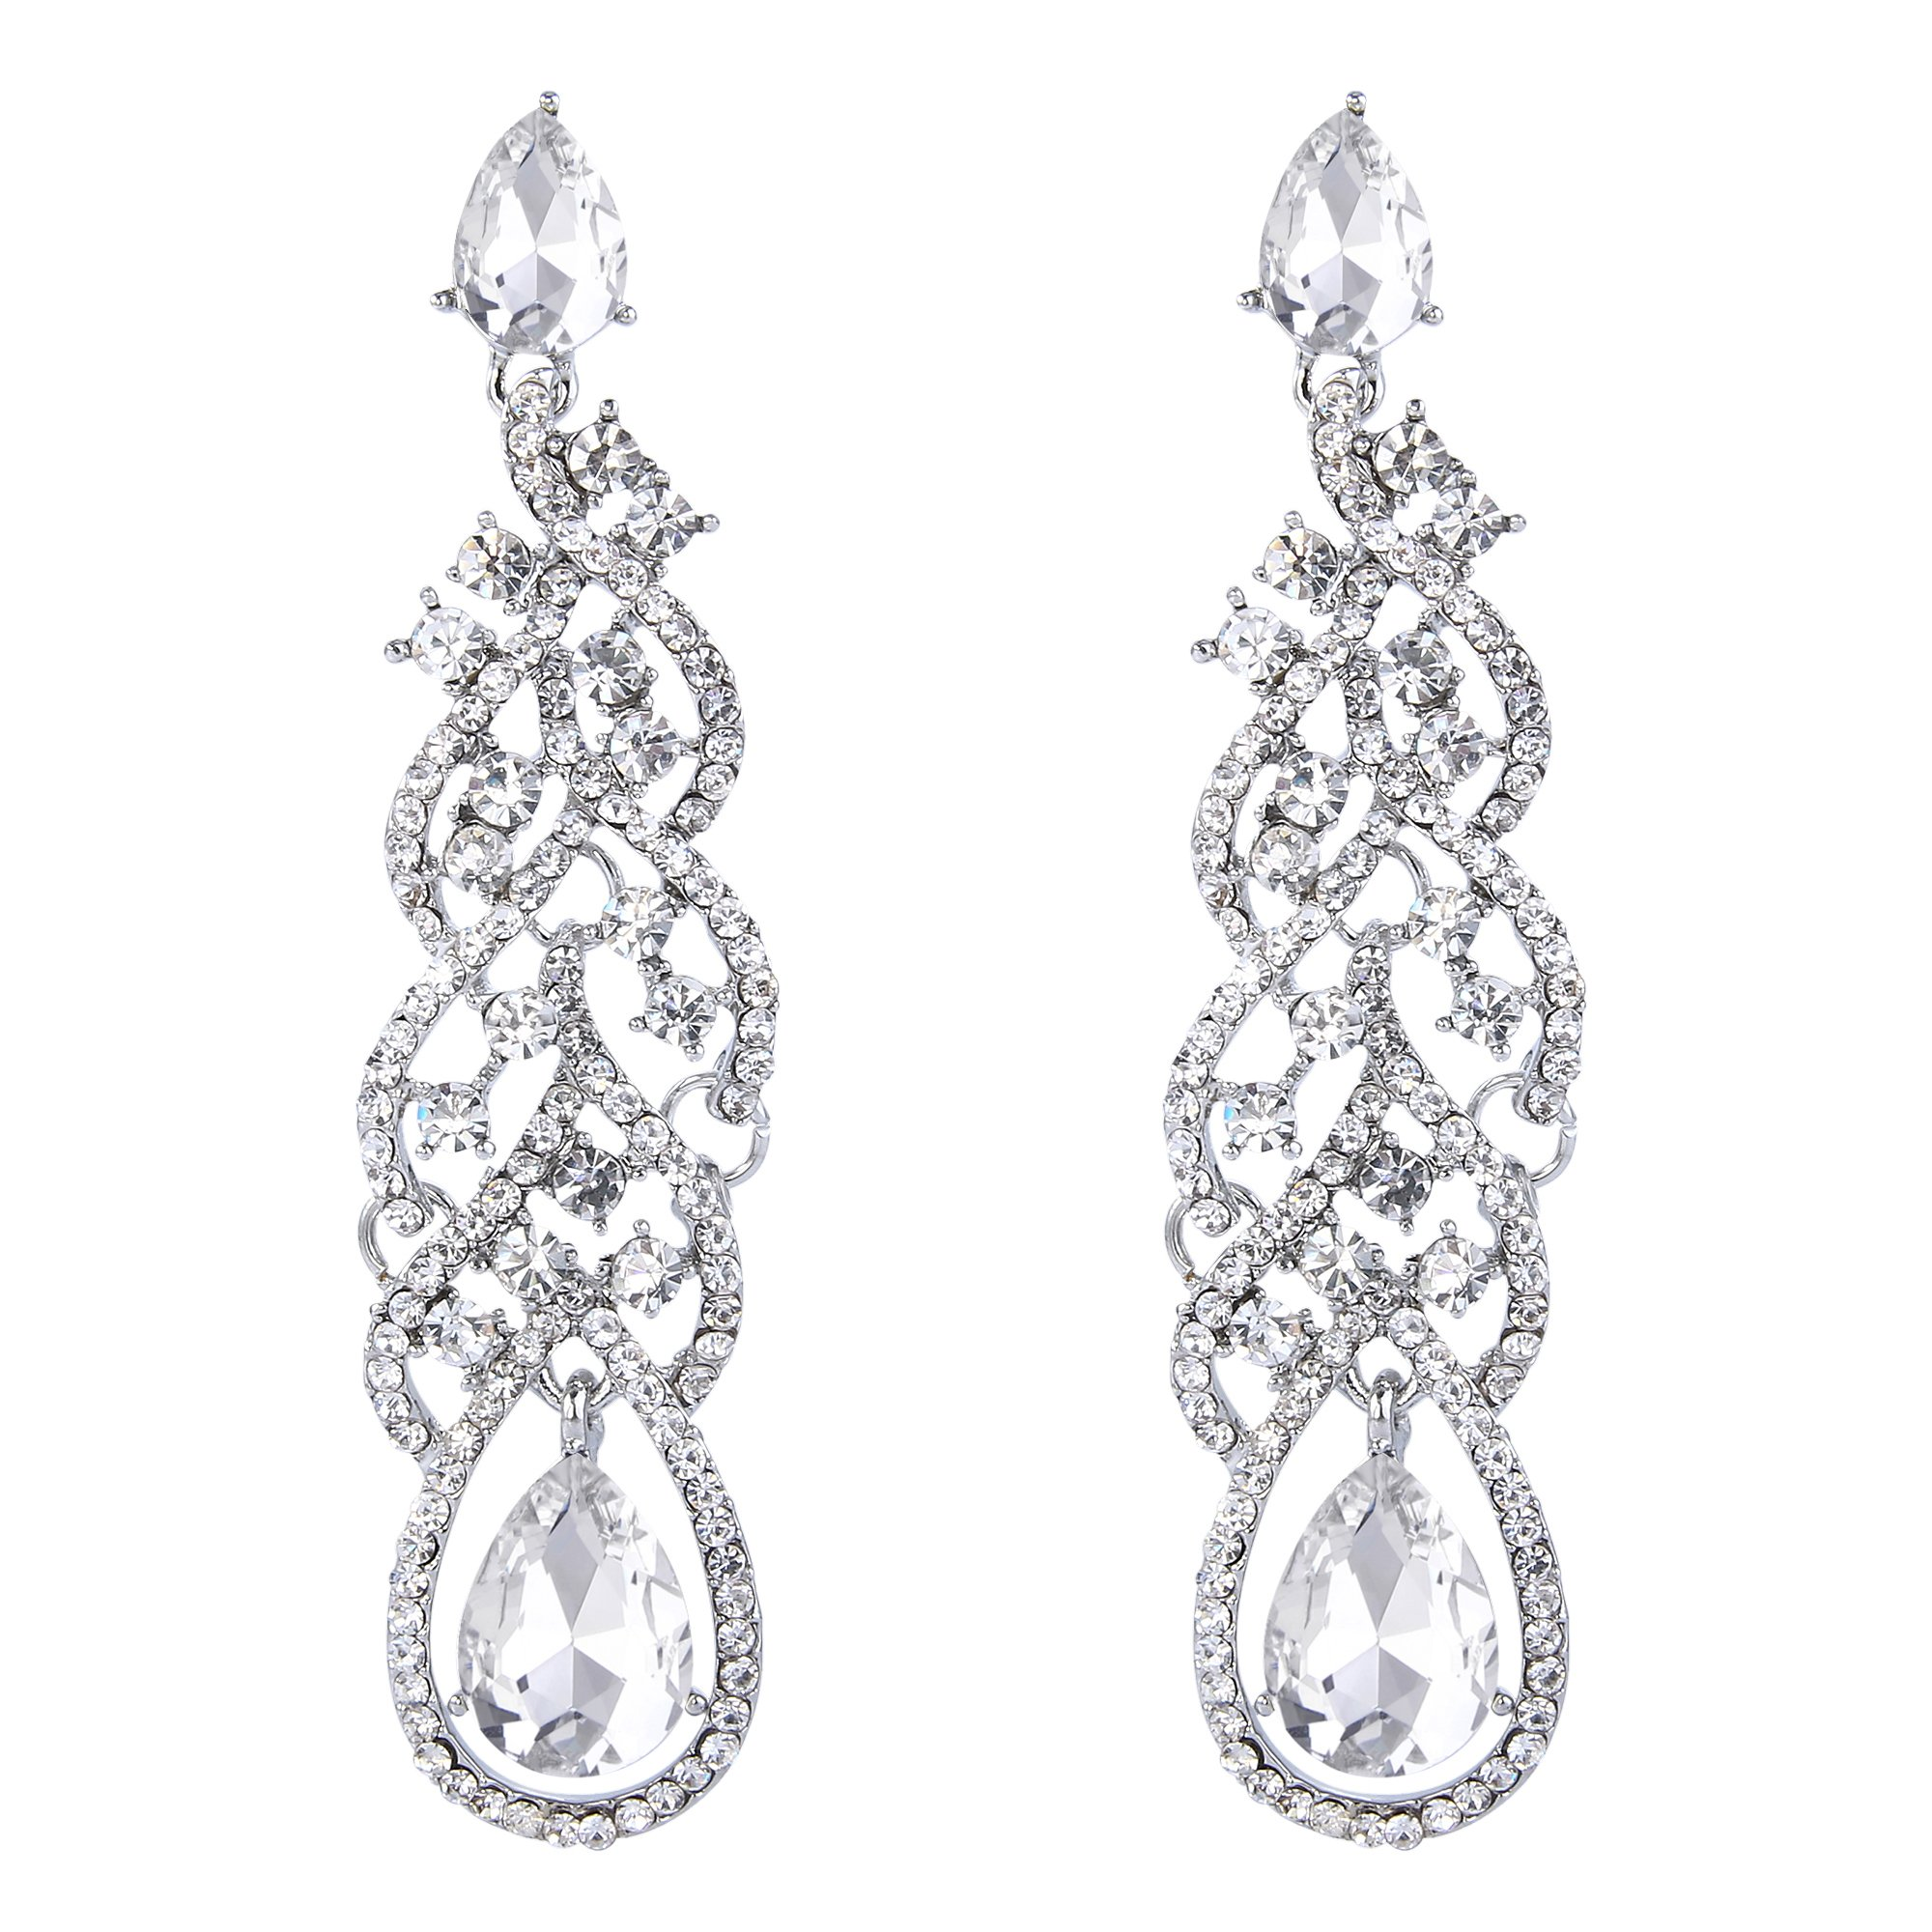 BriLove Silver-Tone Dangle Earrings for Women Fashion Vintage Inspired Crystal Teardrop Hollow Floral Leaf Cluster Earrings Clear